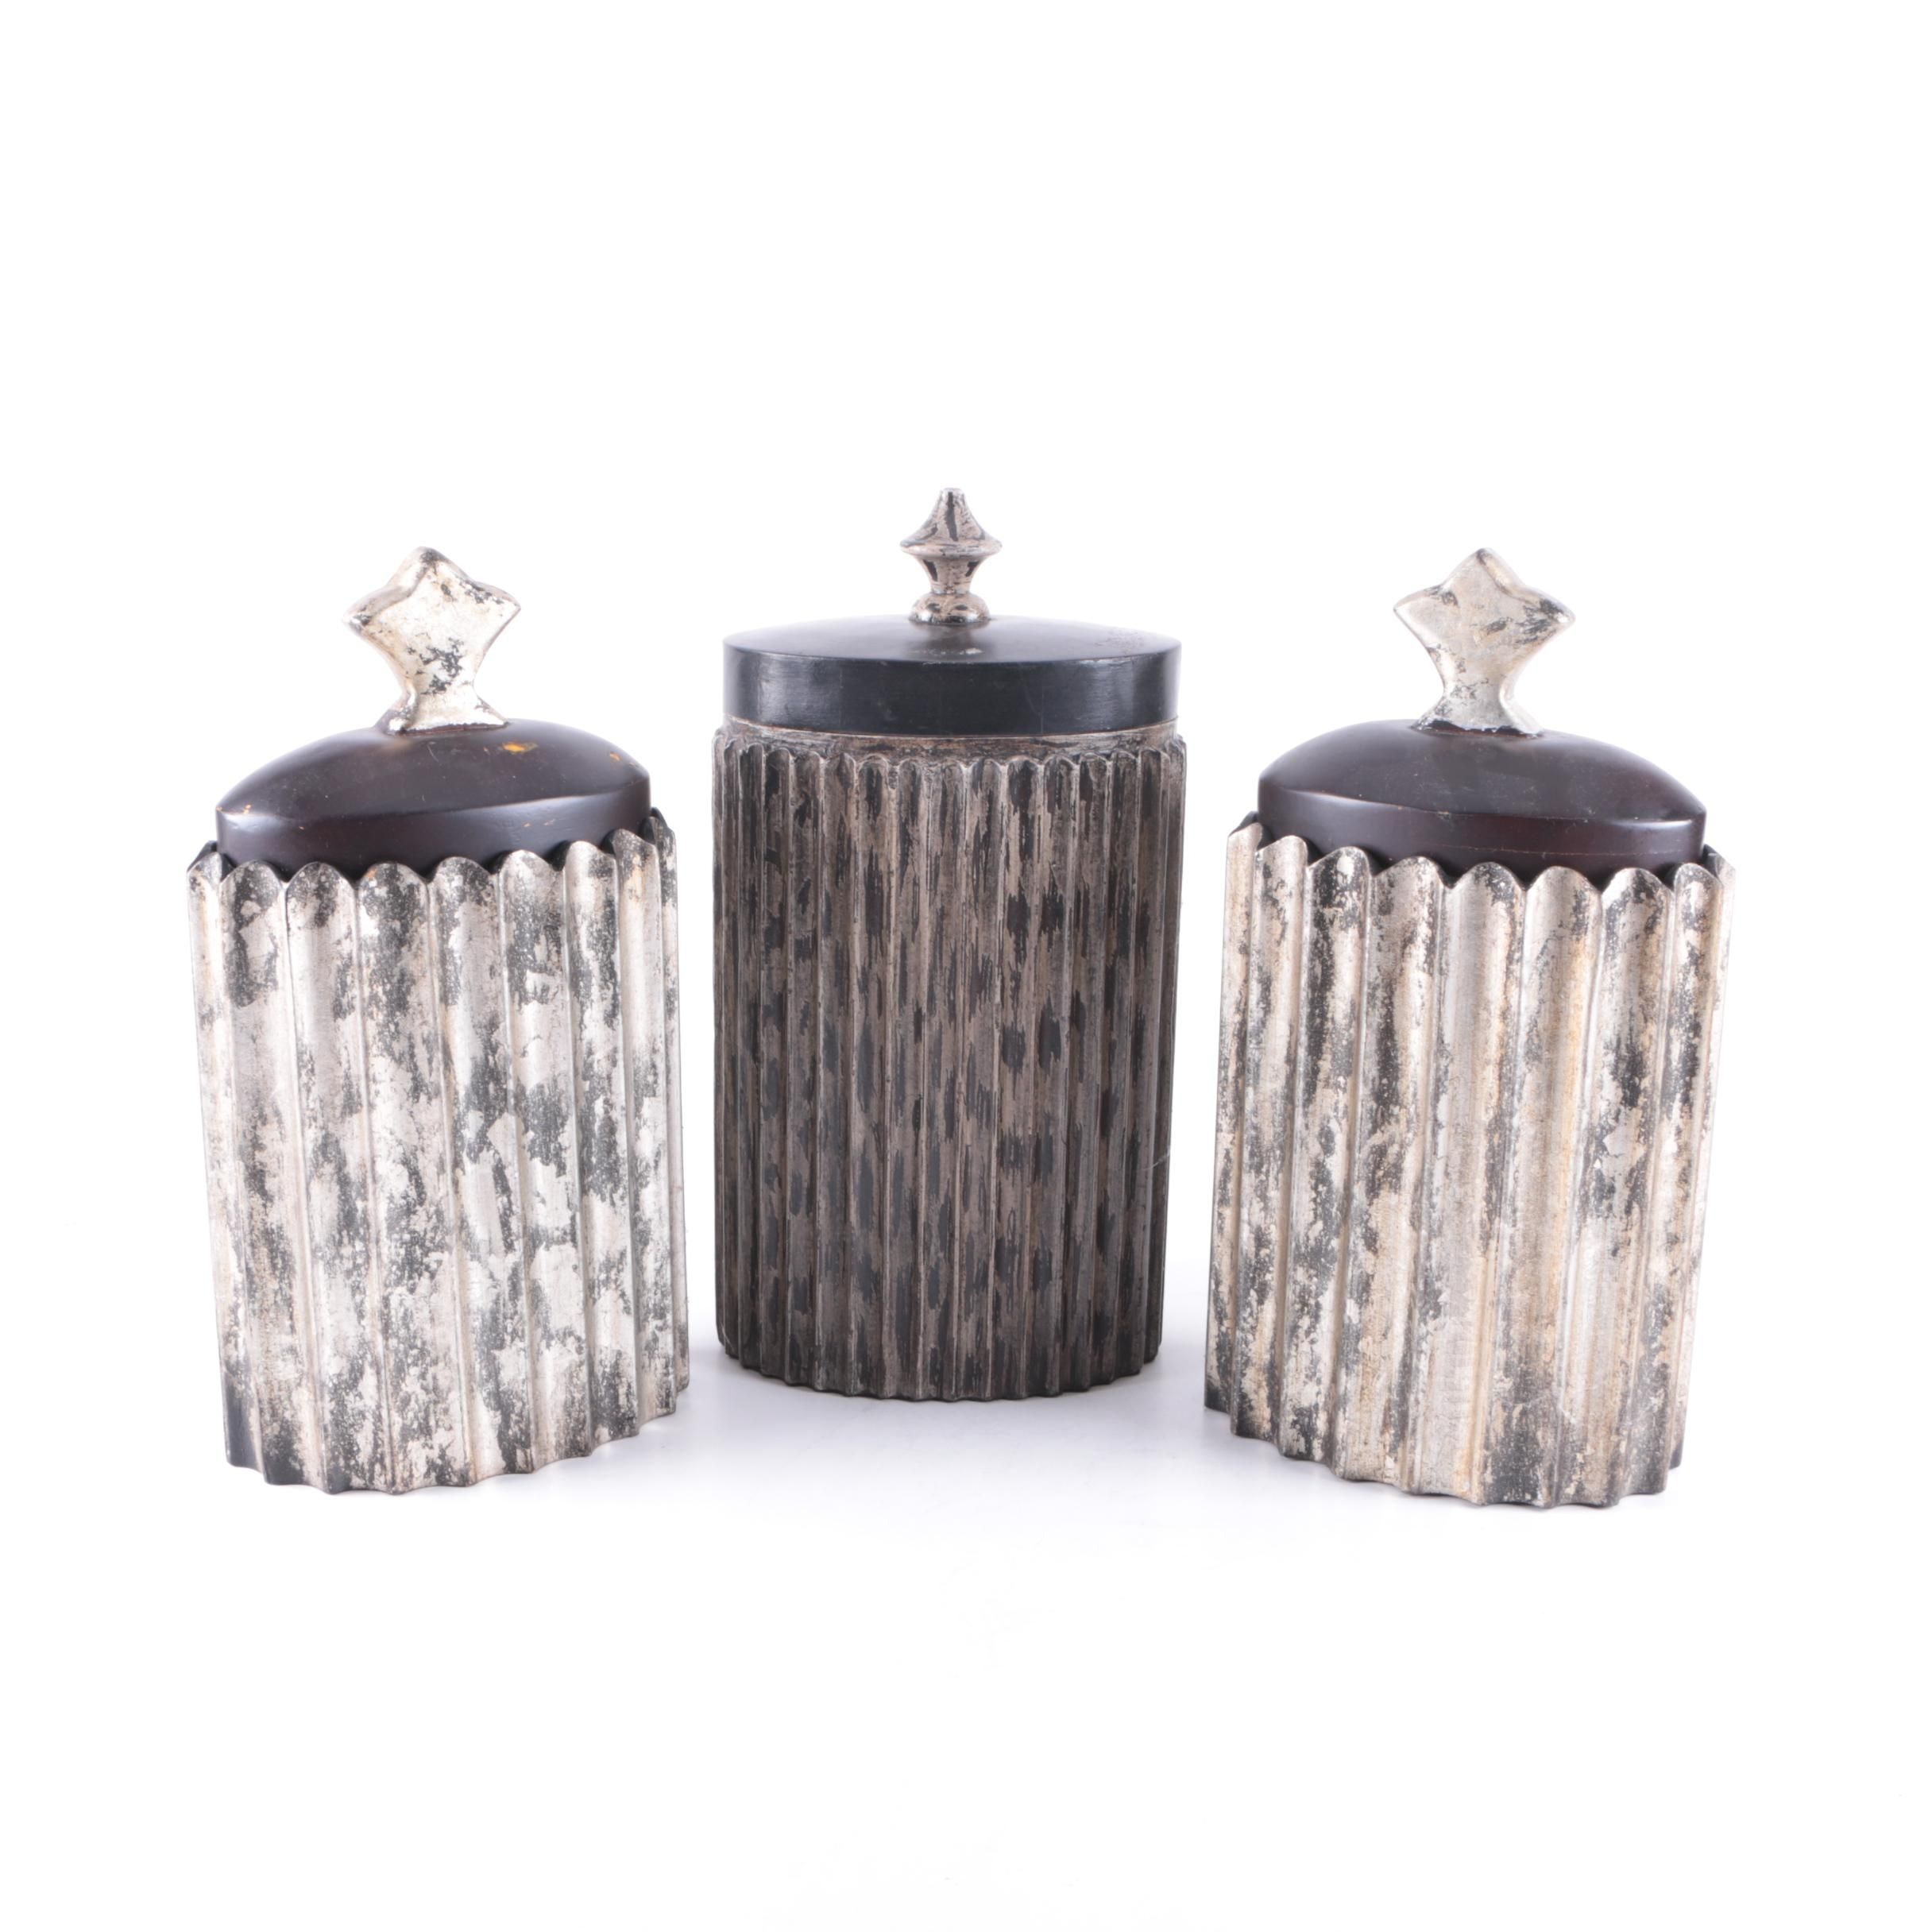 Collection of Decorative Canisters